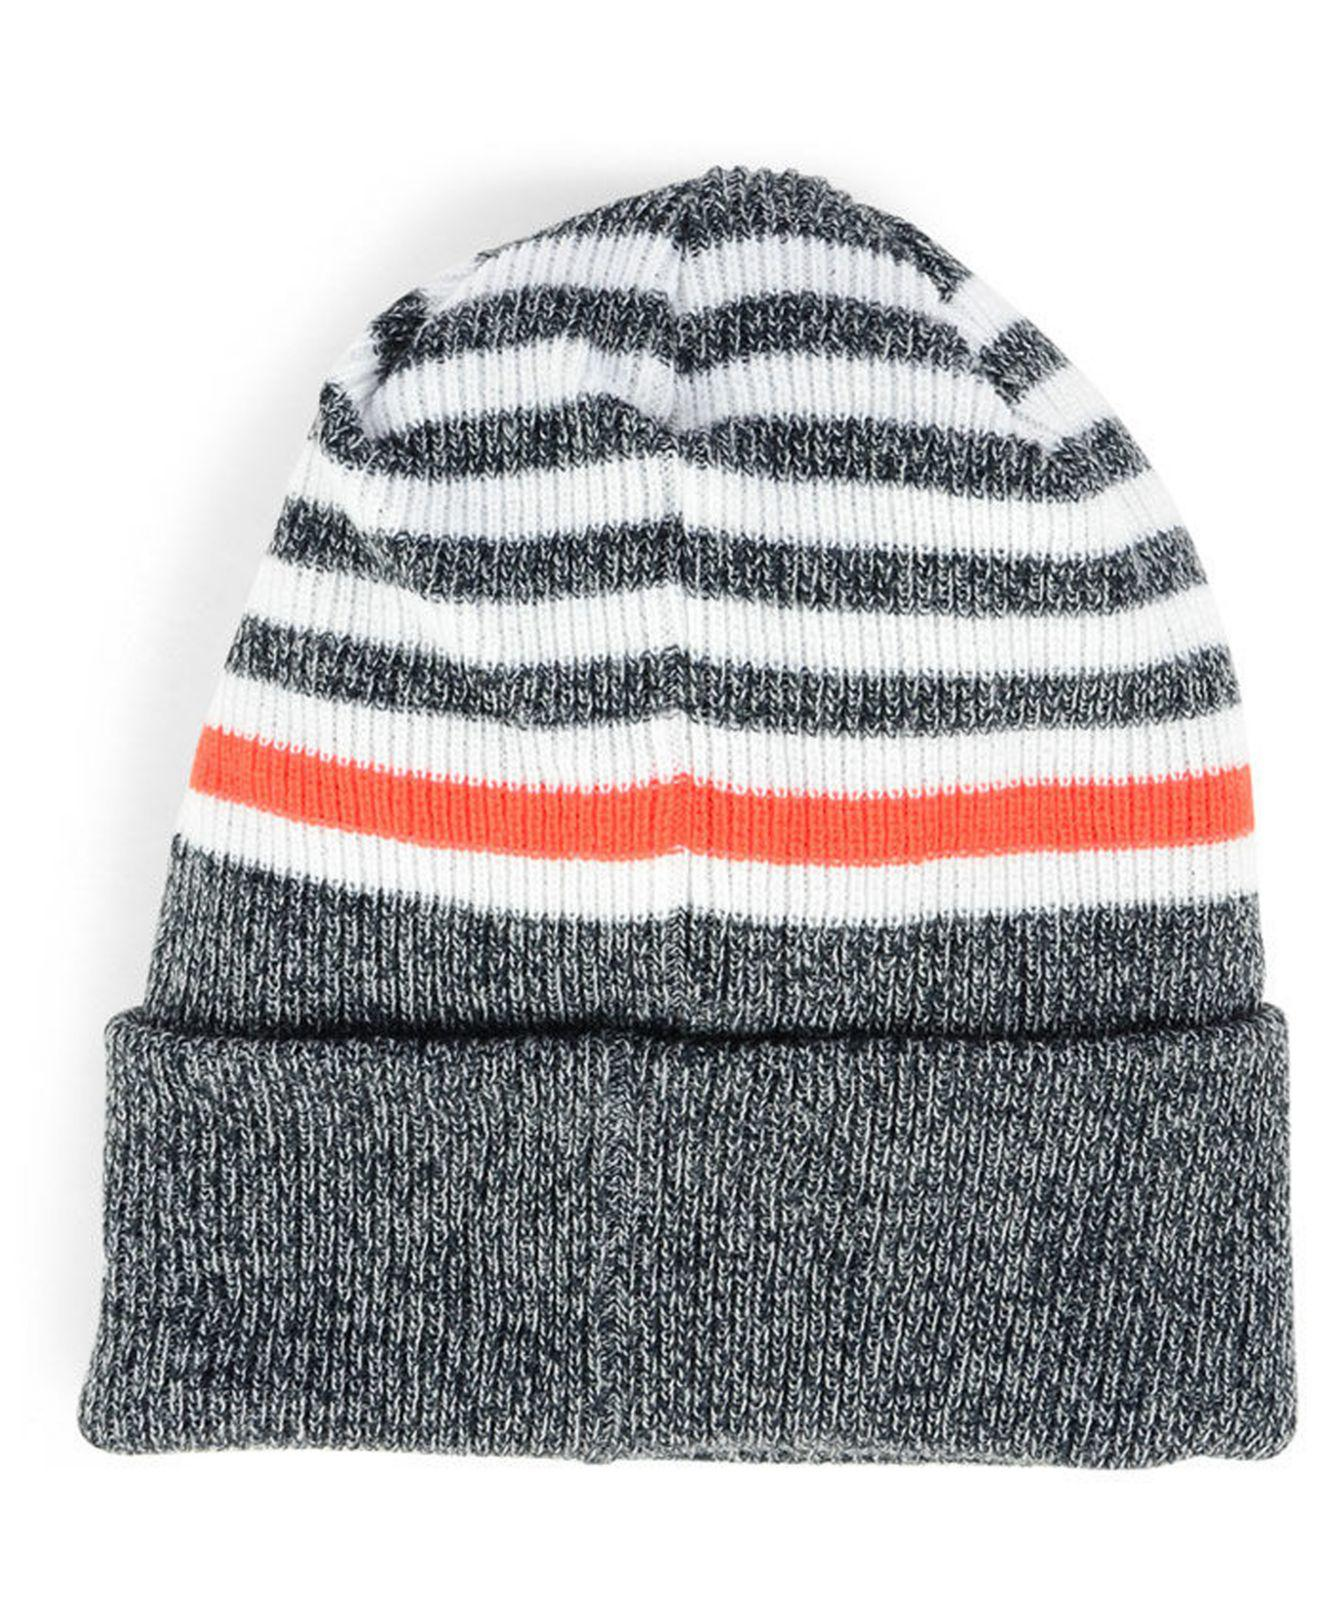 sports shoes 92436 cdaa8 ... new arrivals lyst ktz syracuse orange striped chill knit hat in blue  for men 5c8ac 0b42d